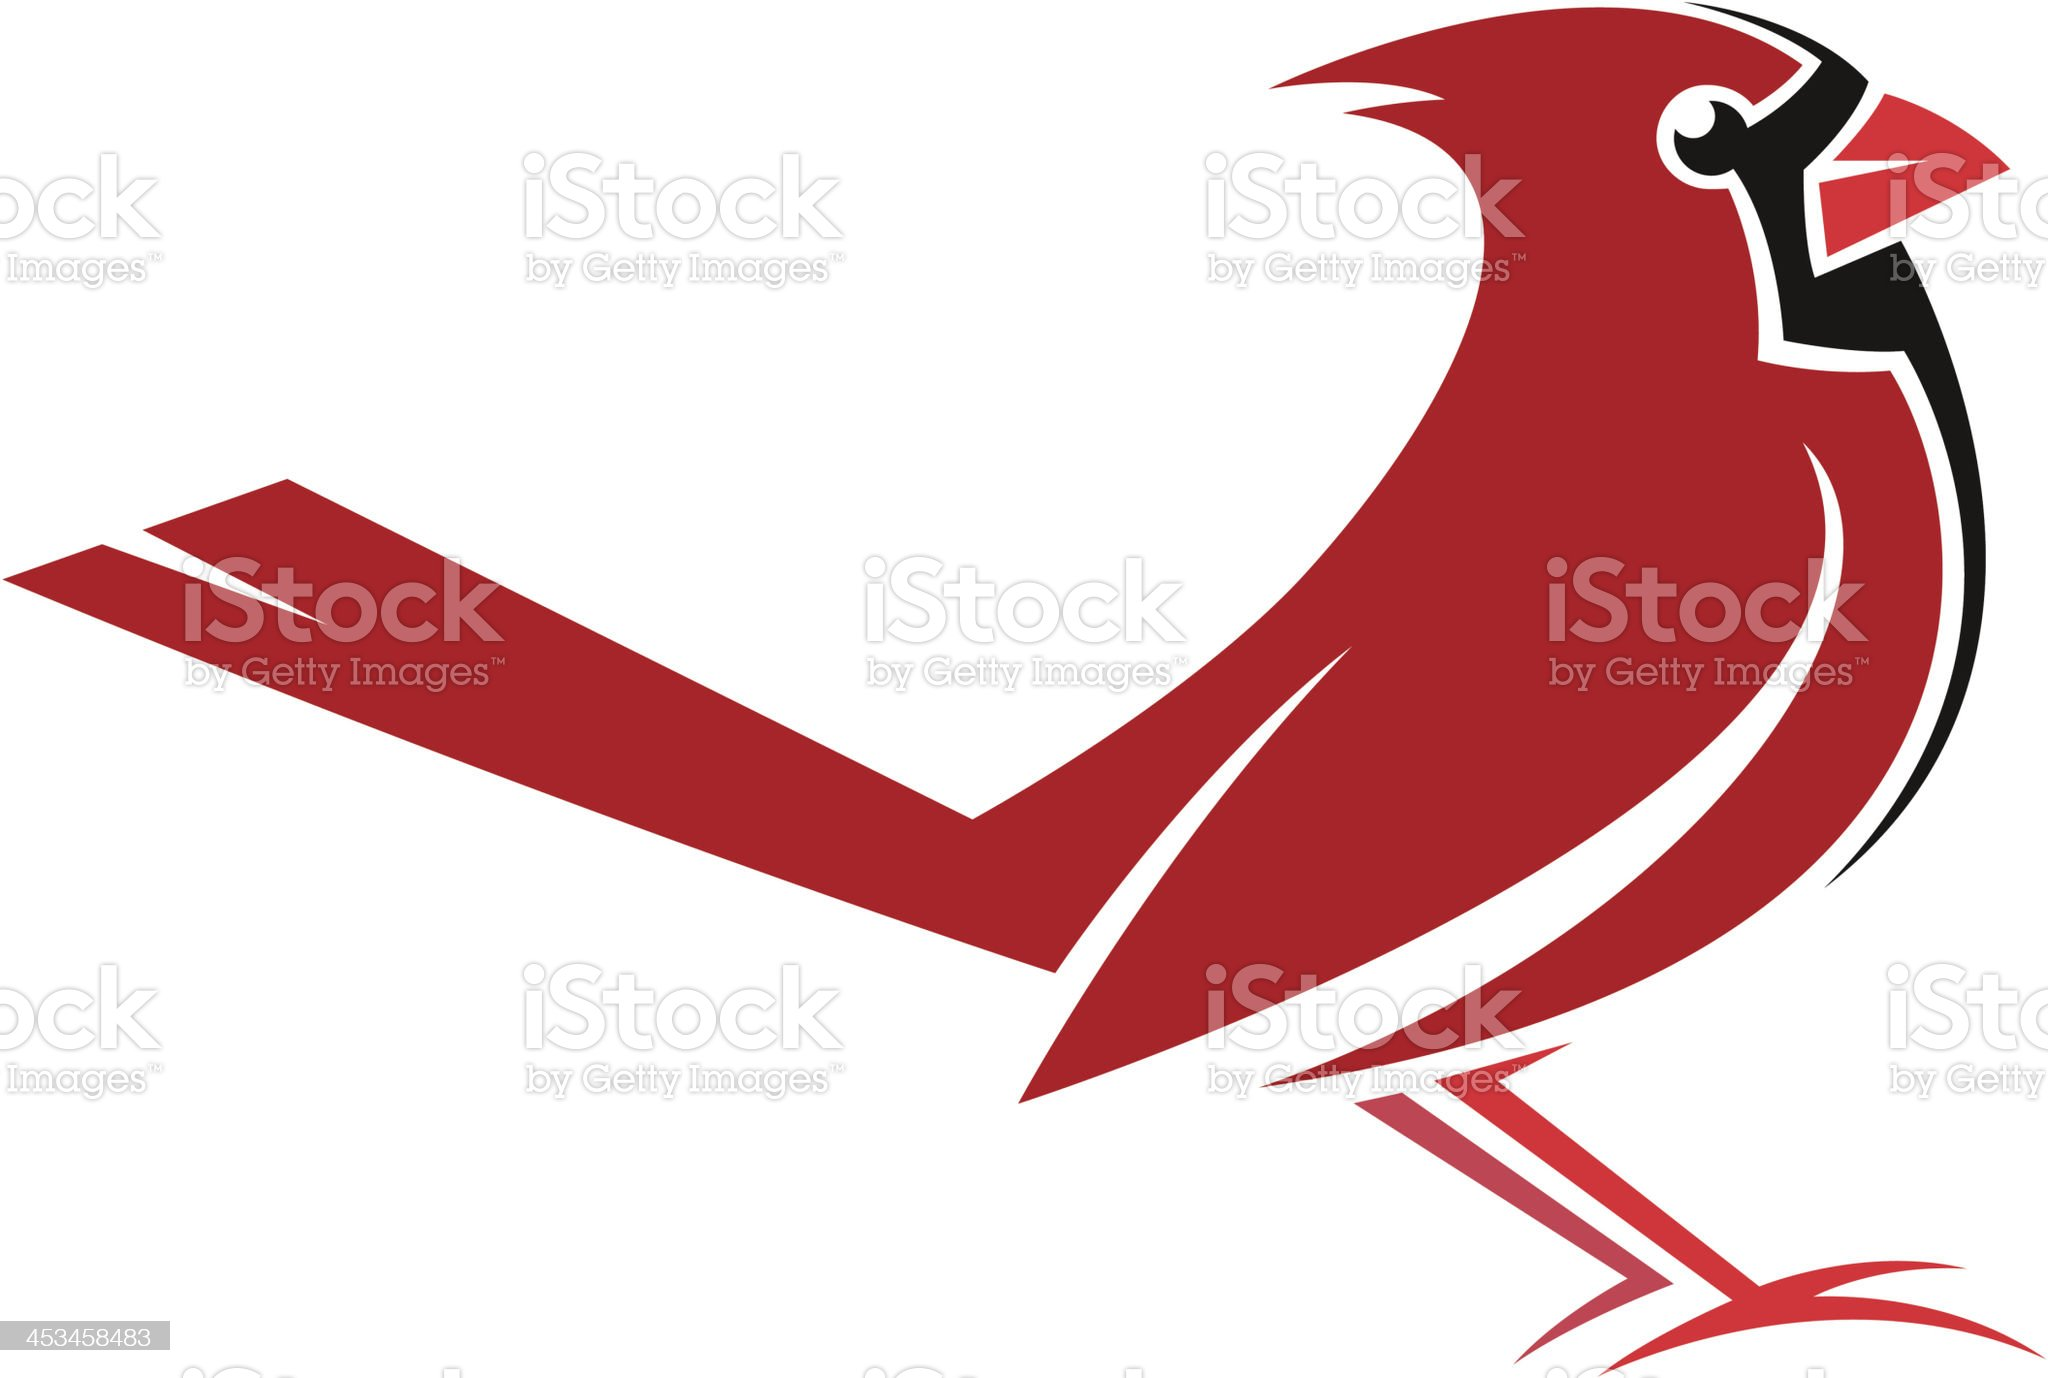 A drawing of a red and black Cardinal royalty-free stock vector art